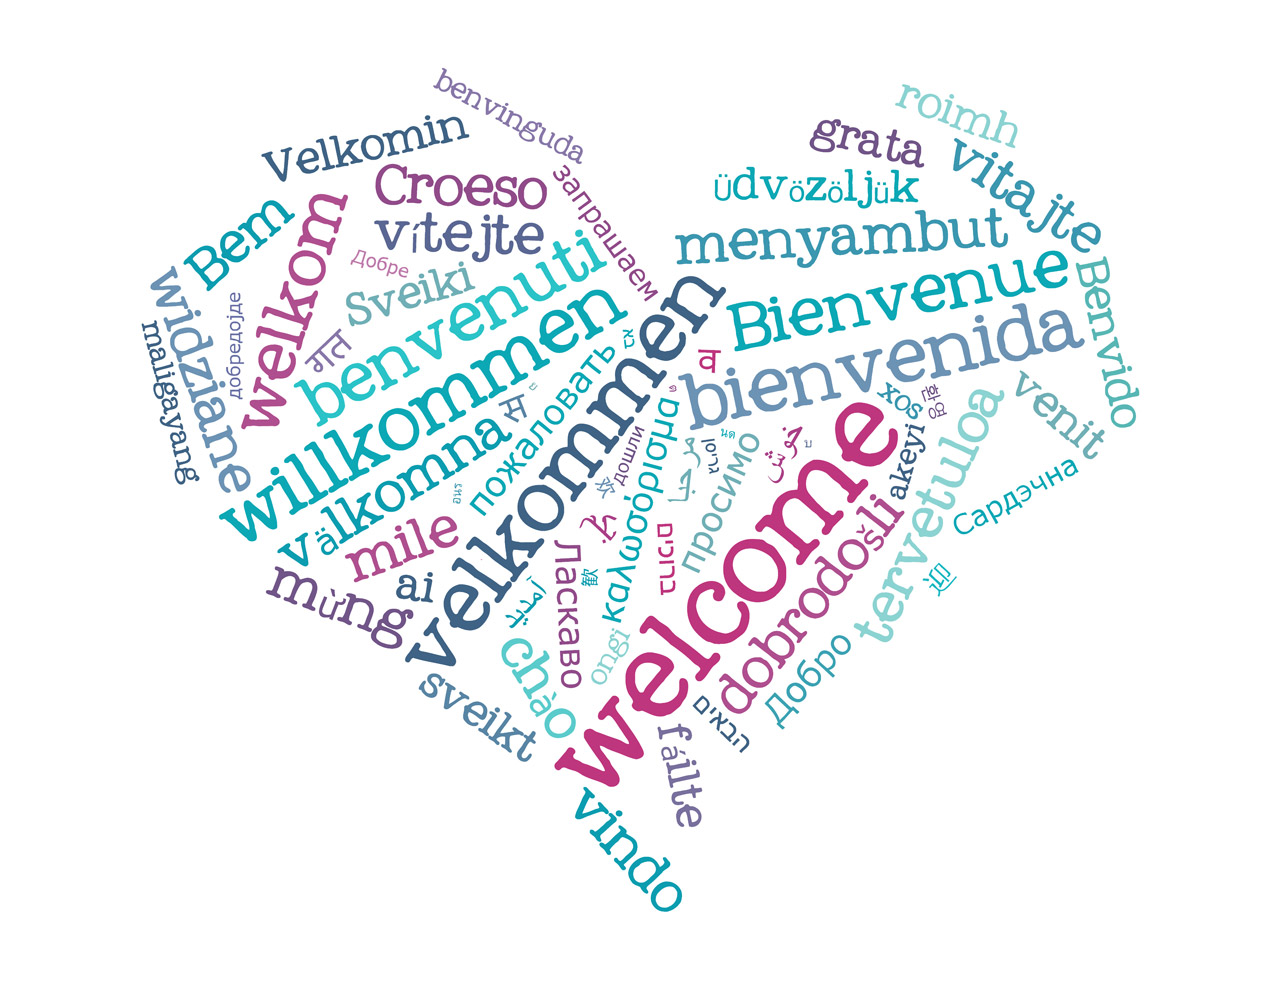 Welcome heart graphic